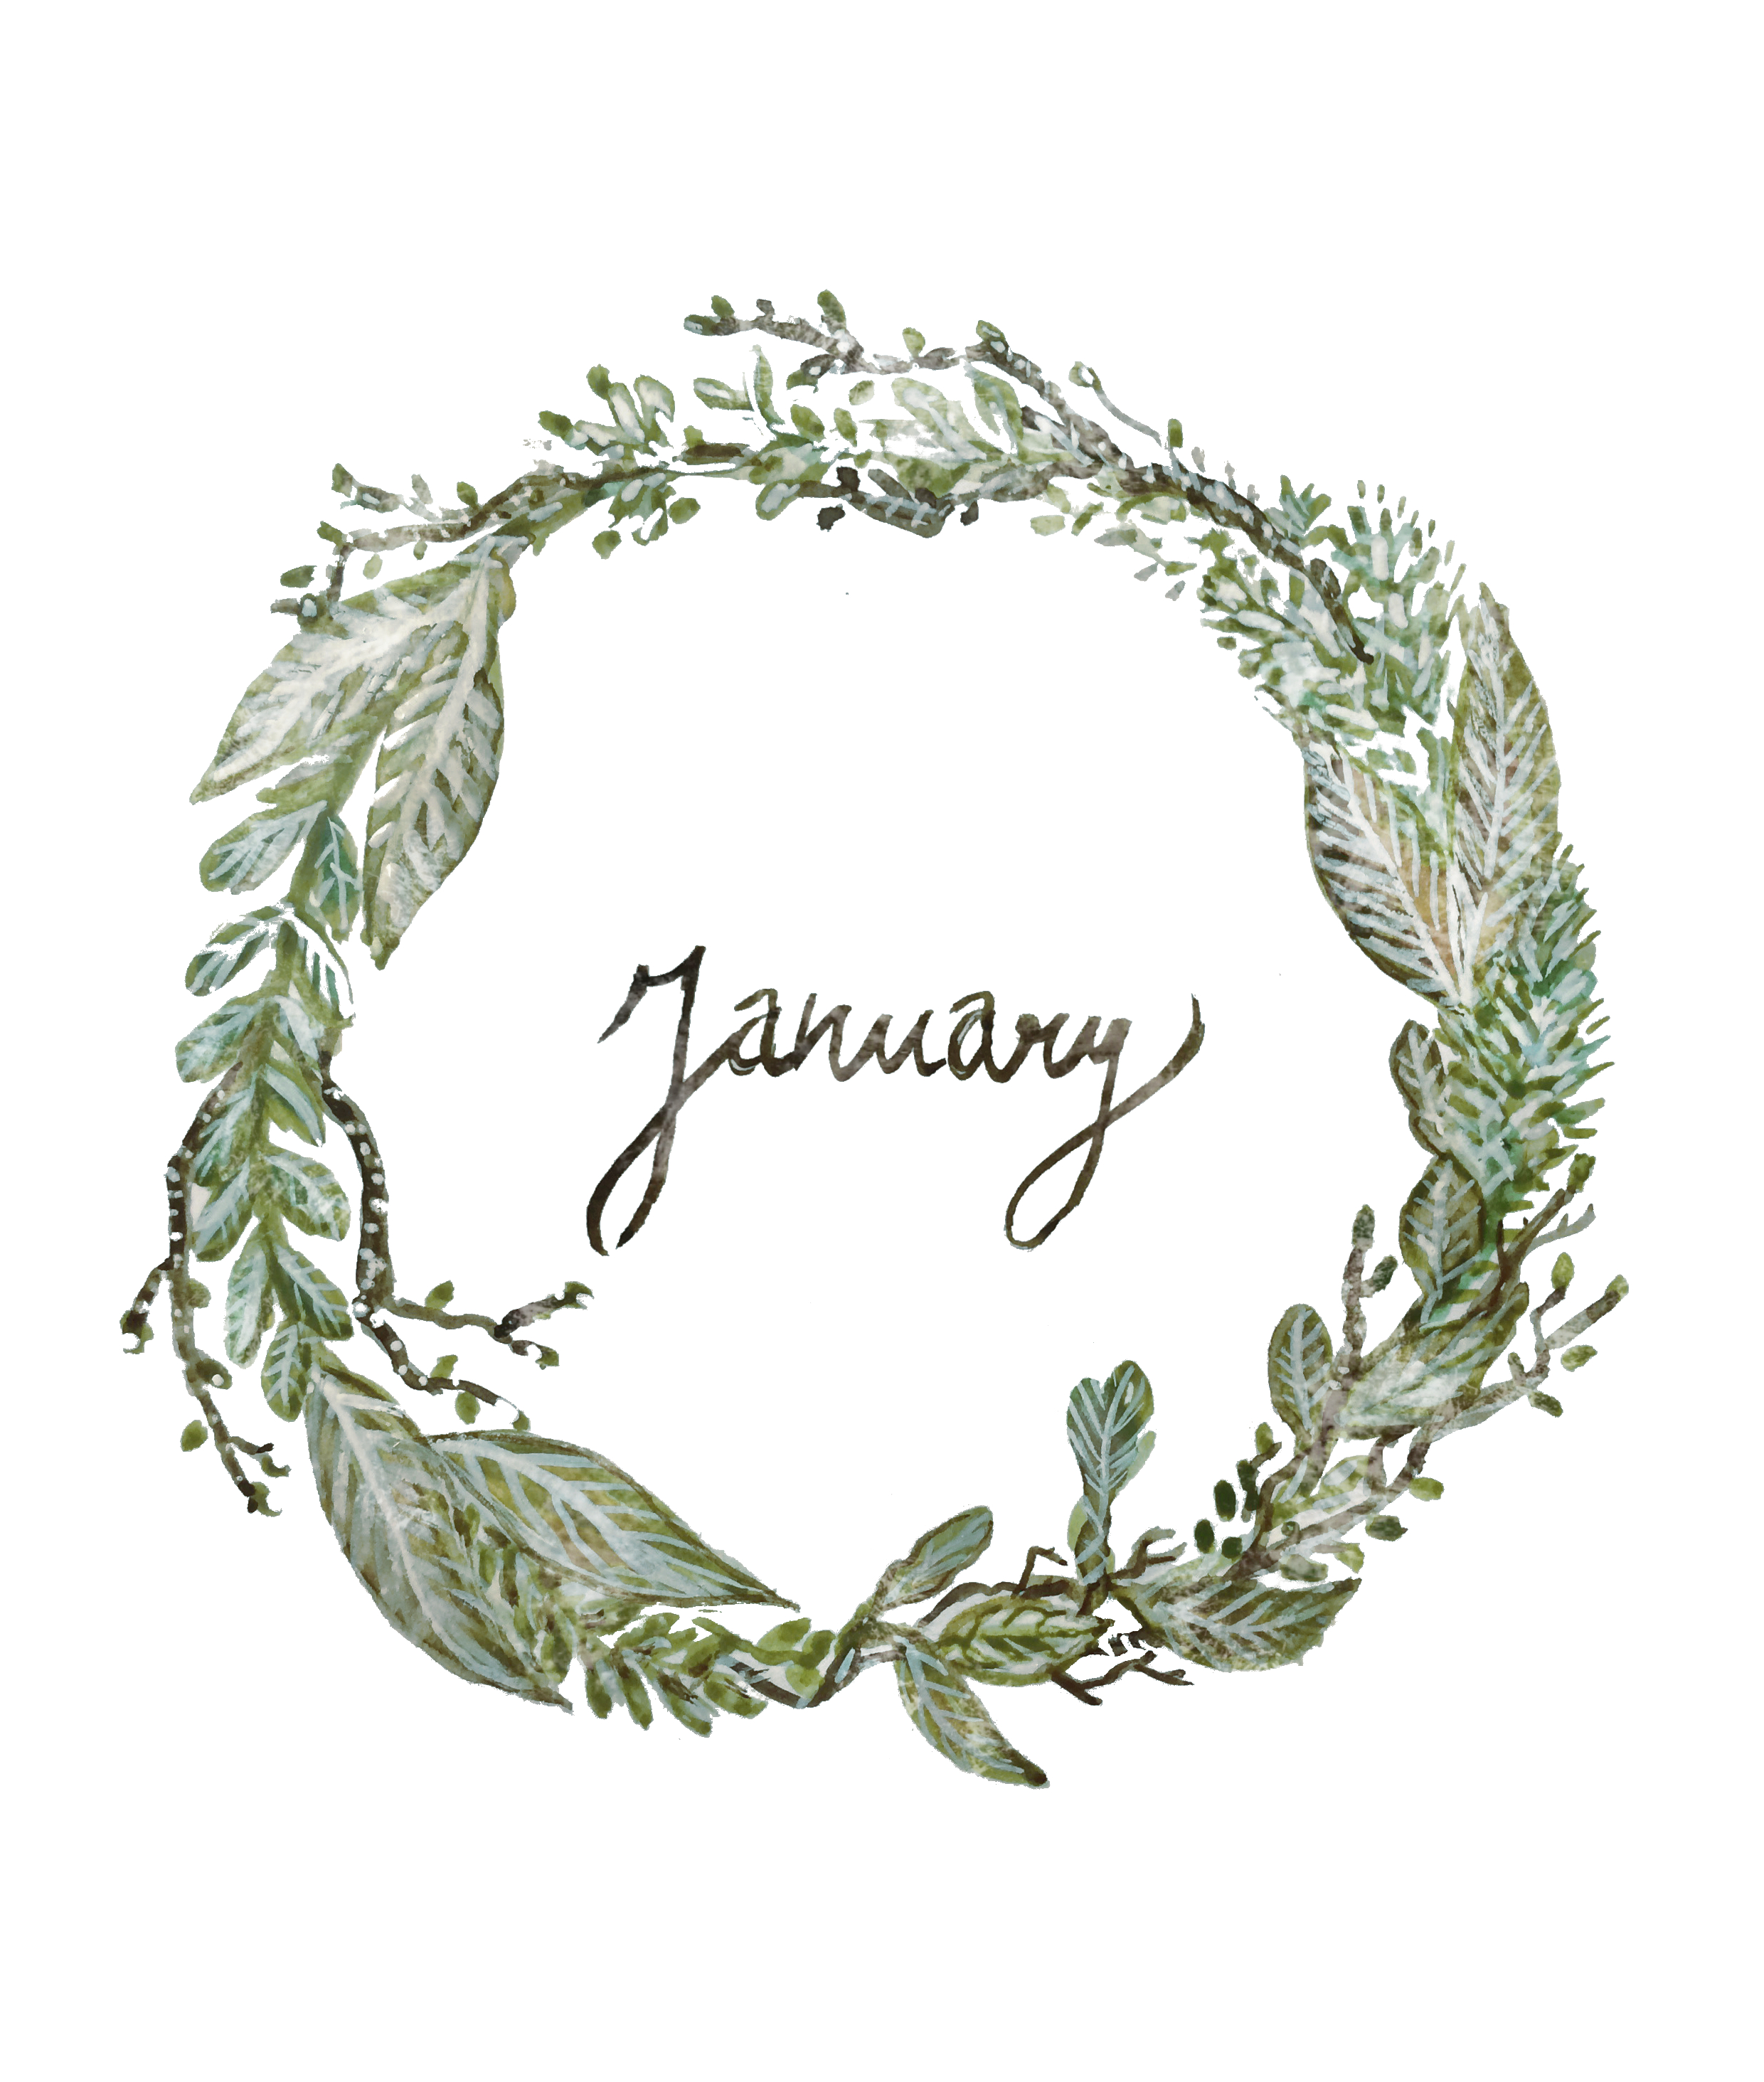 January by Emilie Maguin for Hannahbullivant.com